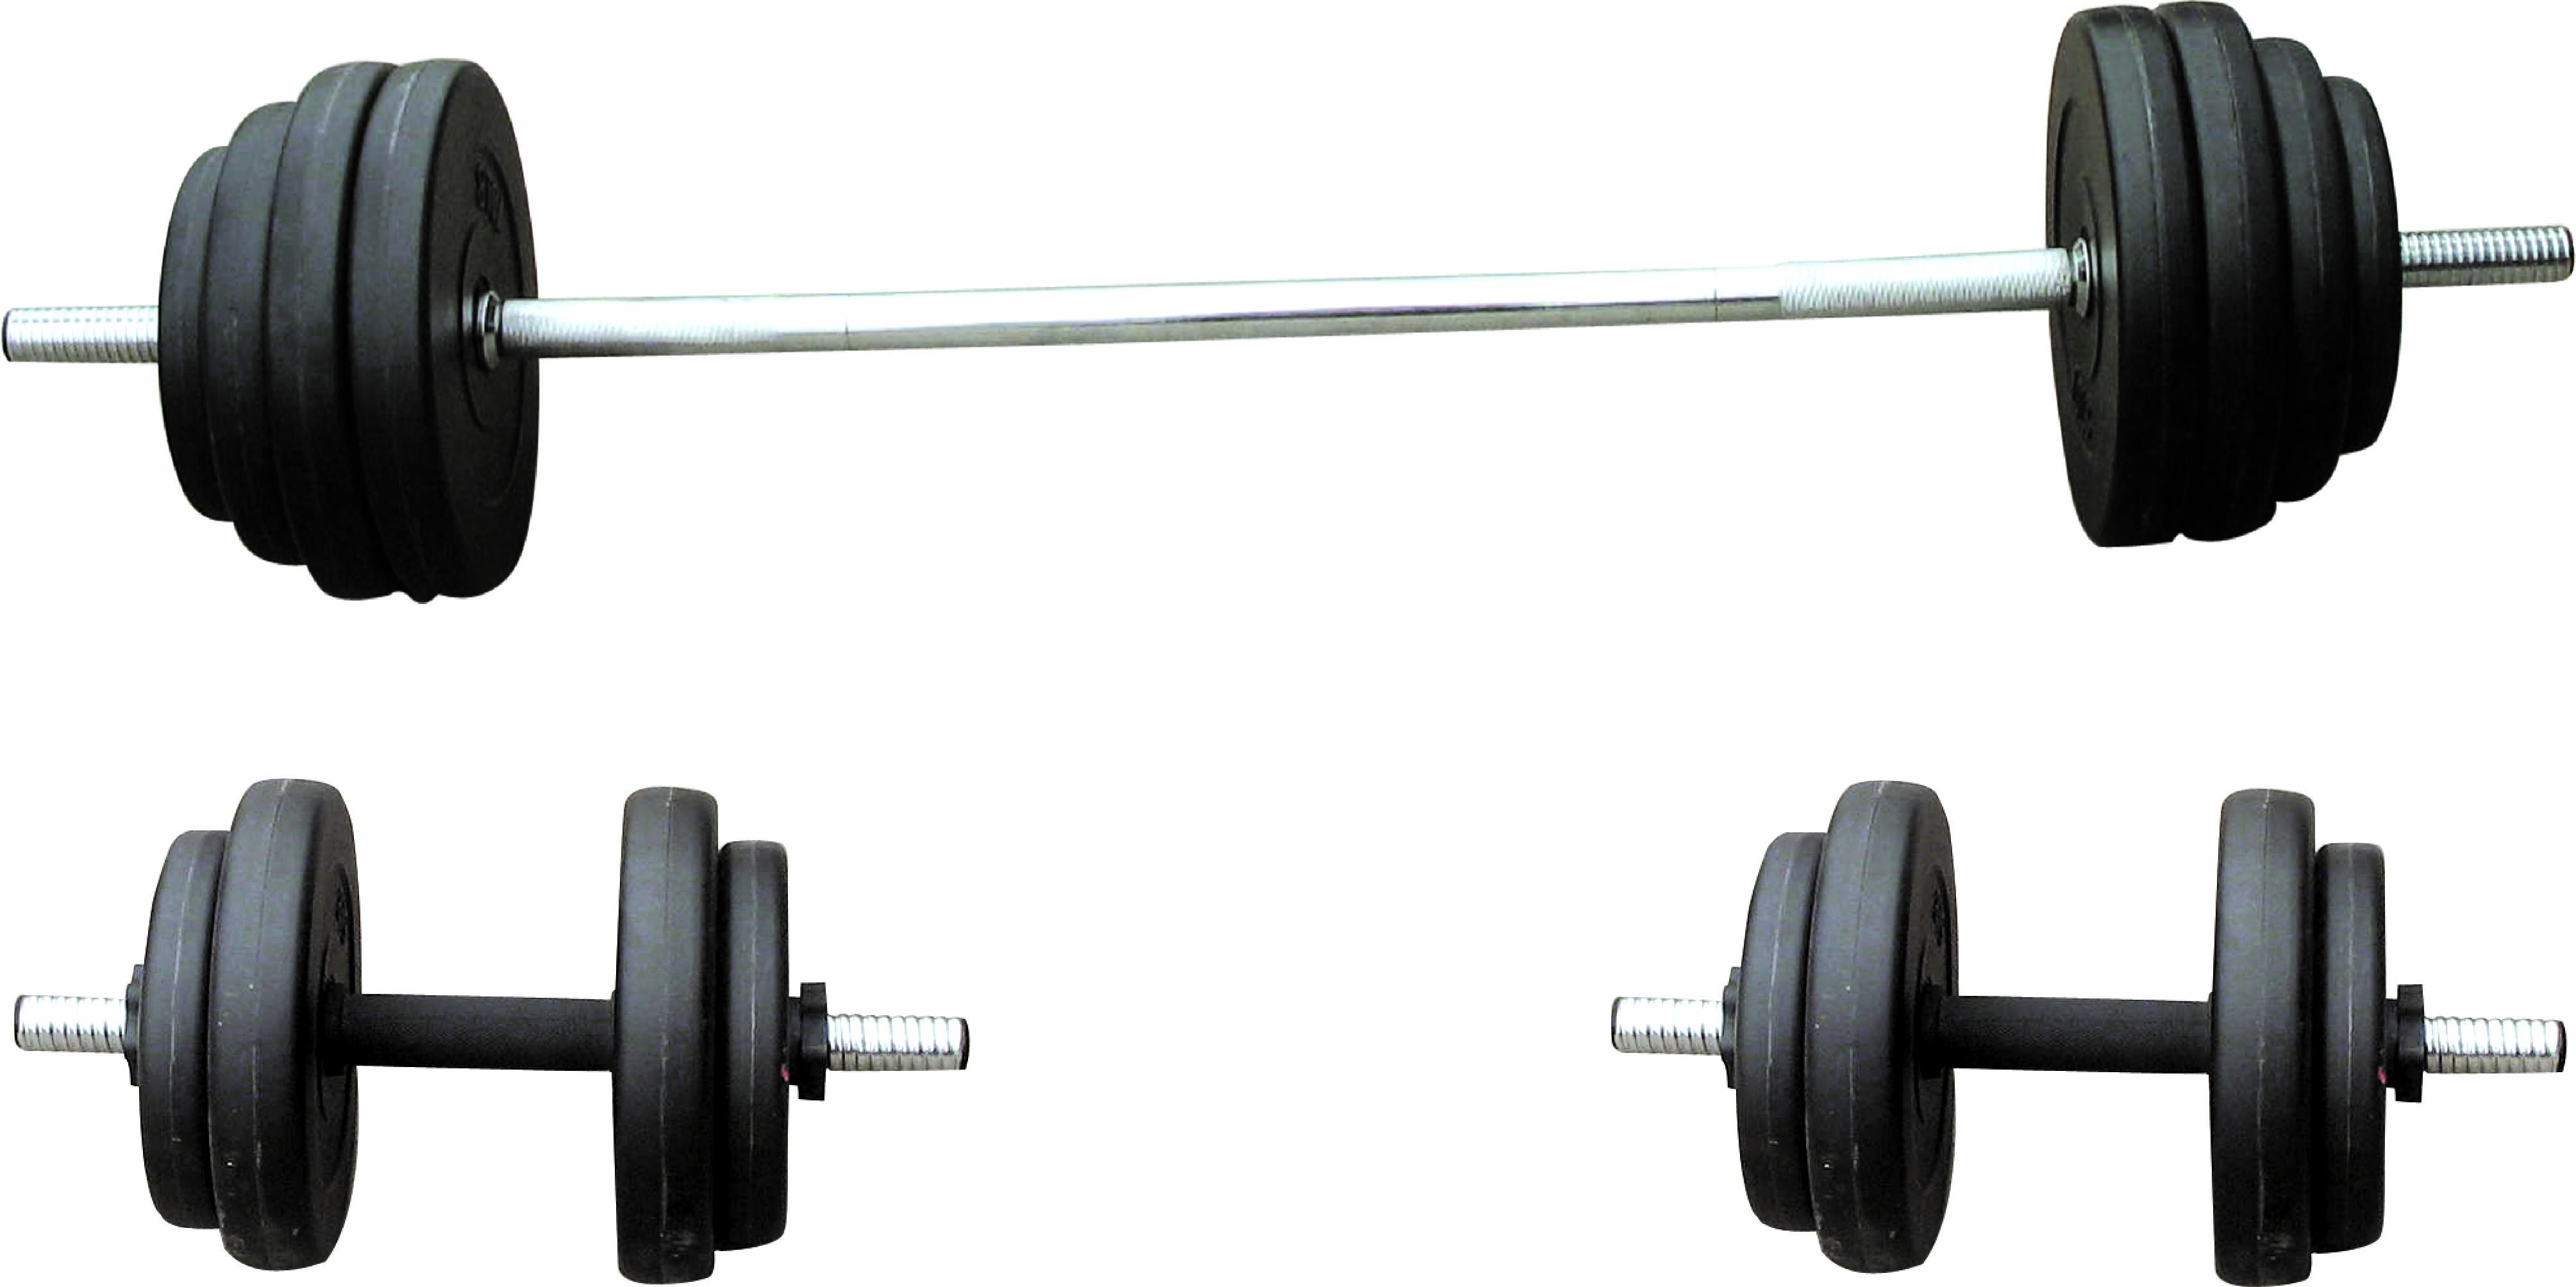 Dumbbell clipart workout gear. Perfect and barbell home